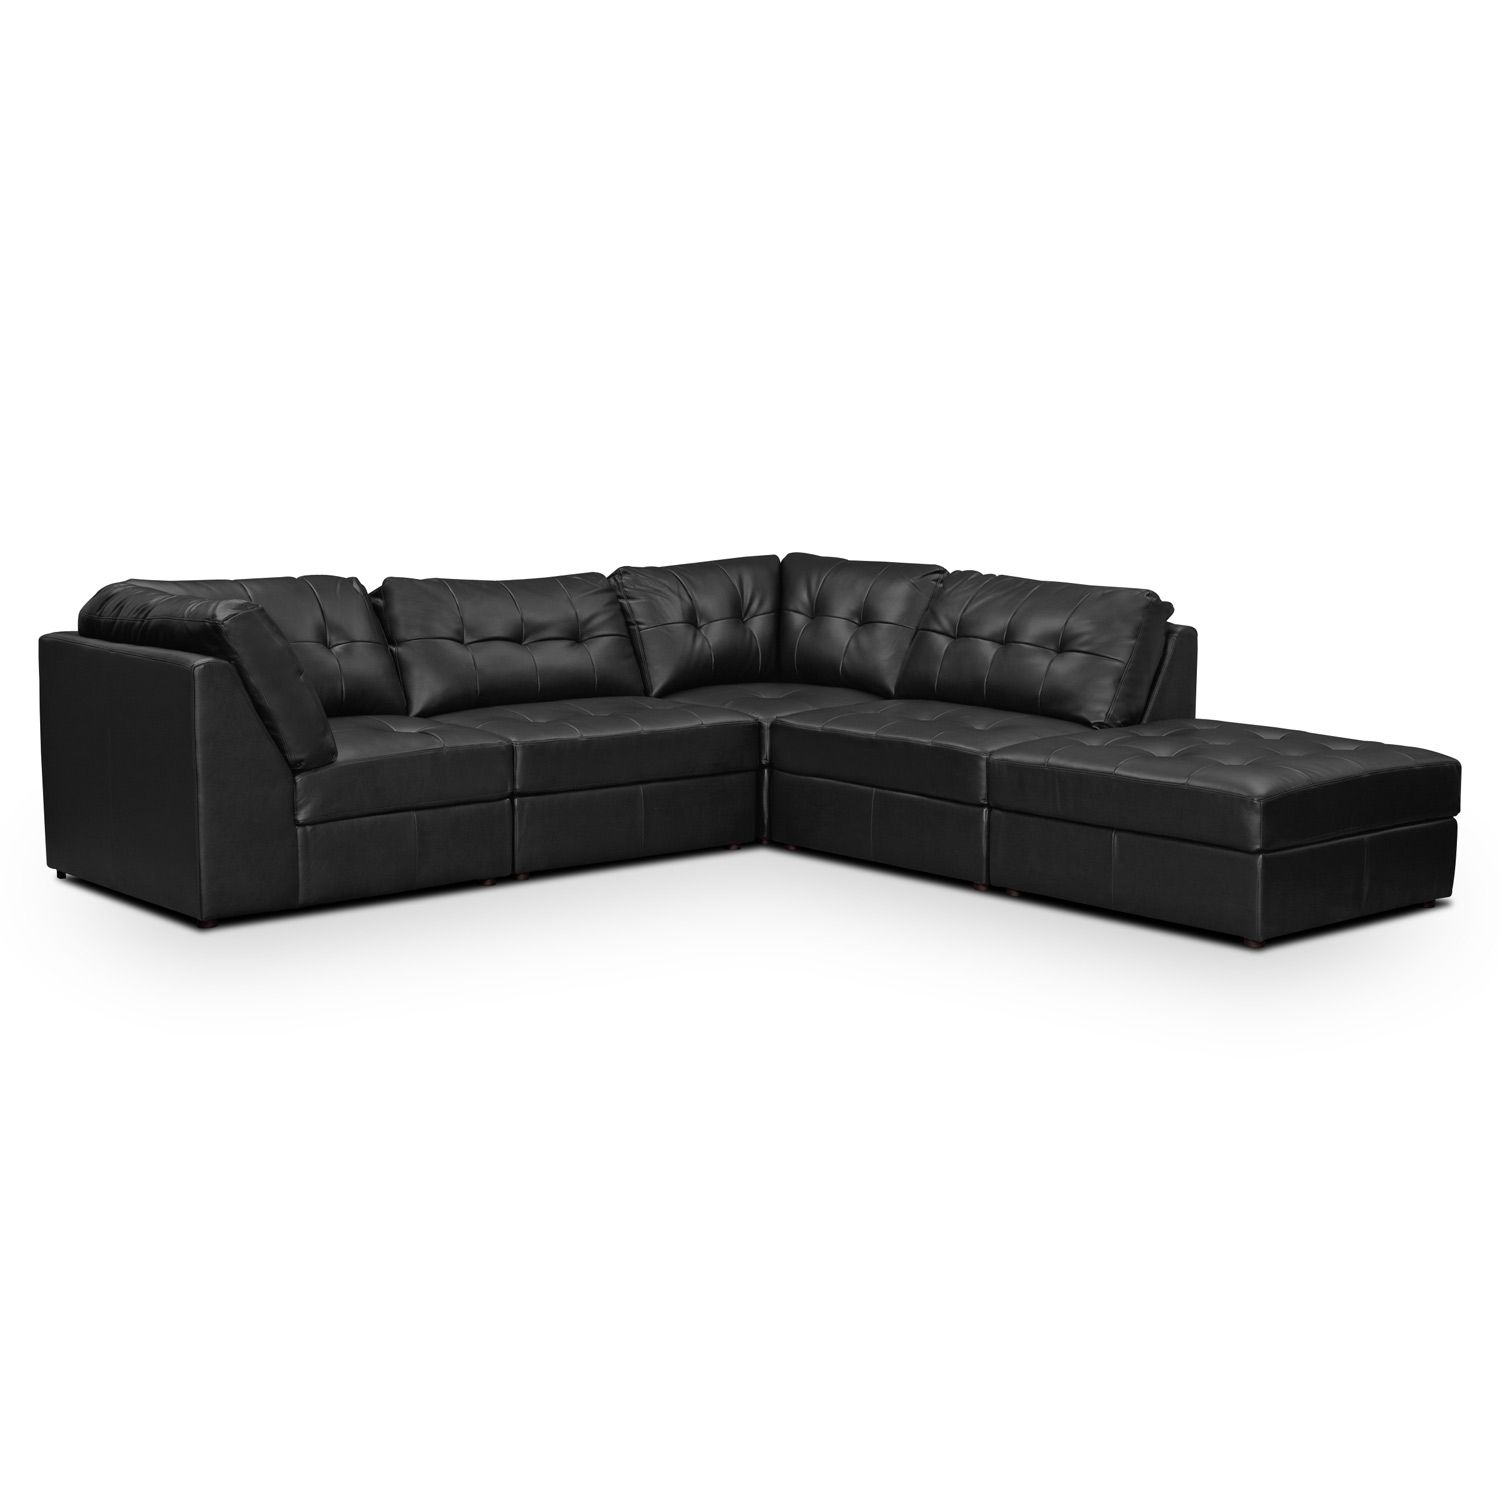 Aventura Leather 5 Pc Sectional Value City Furniture